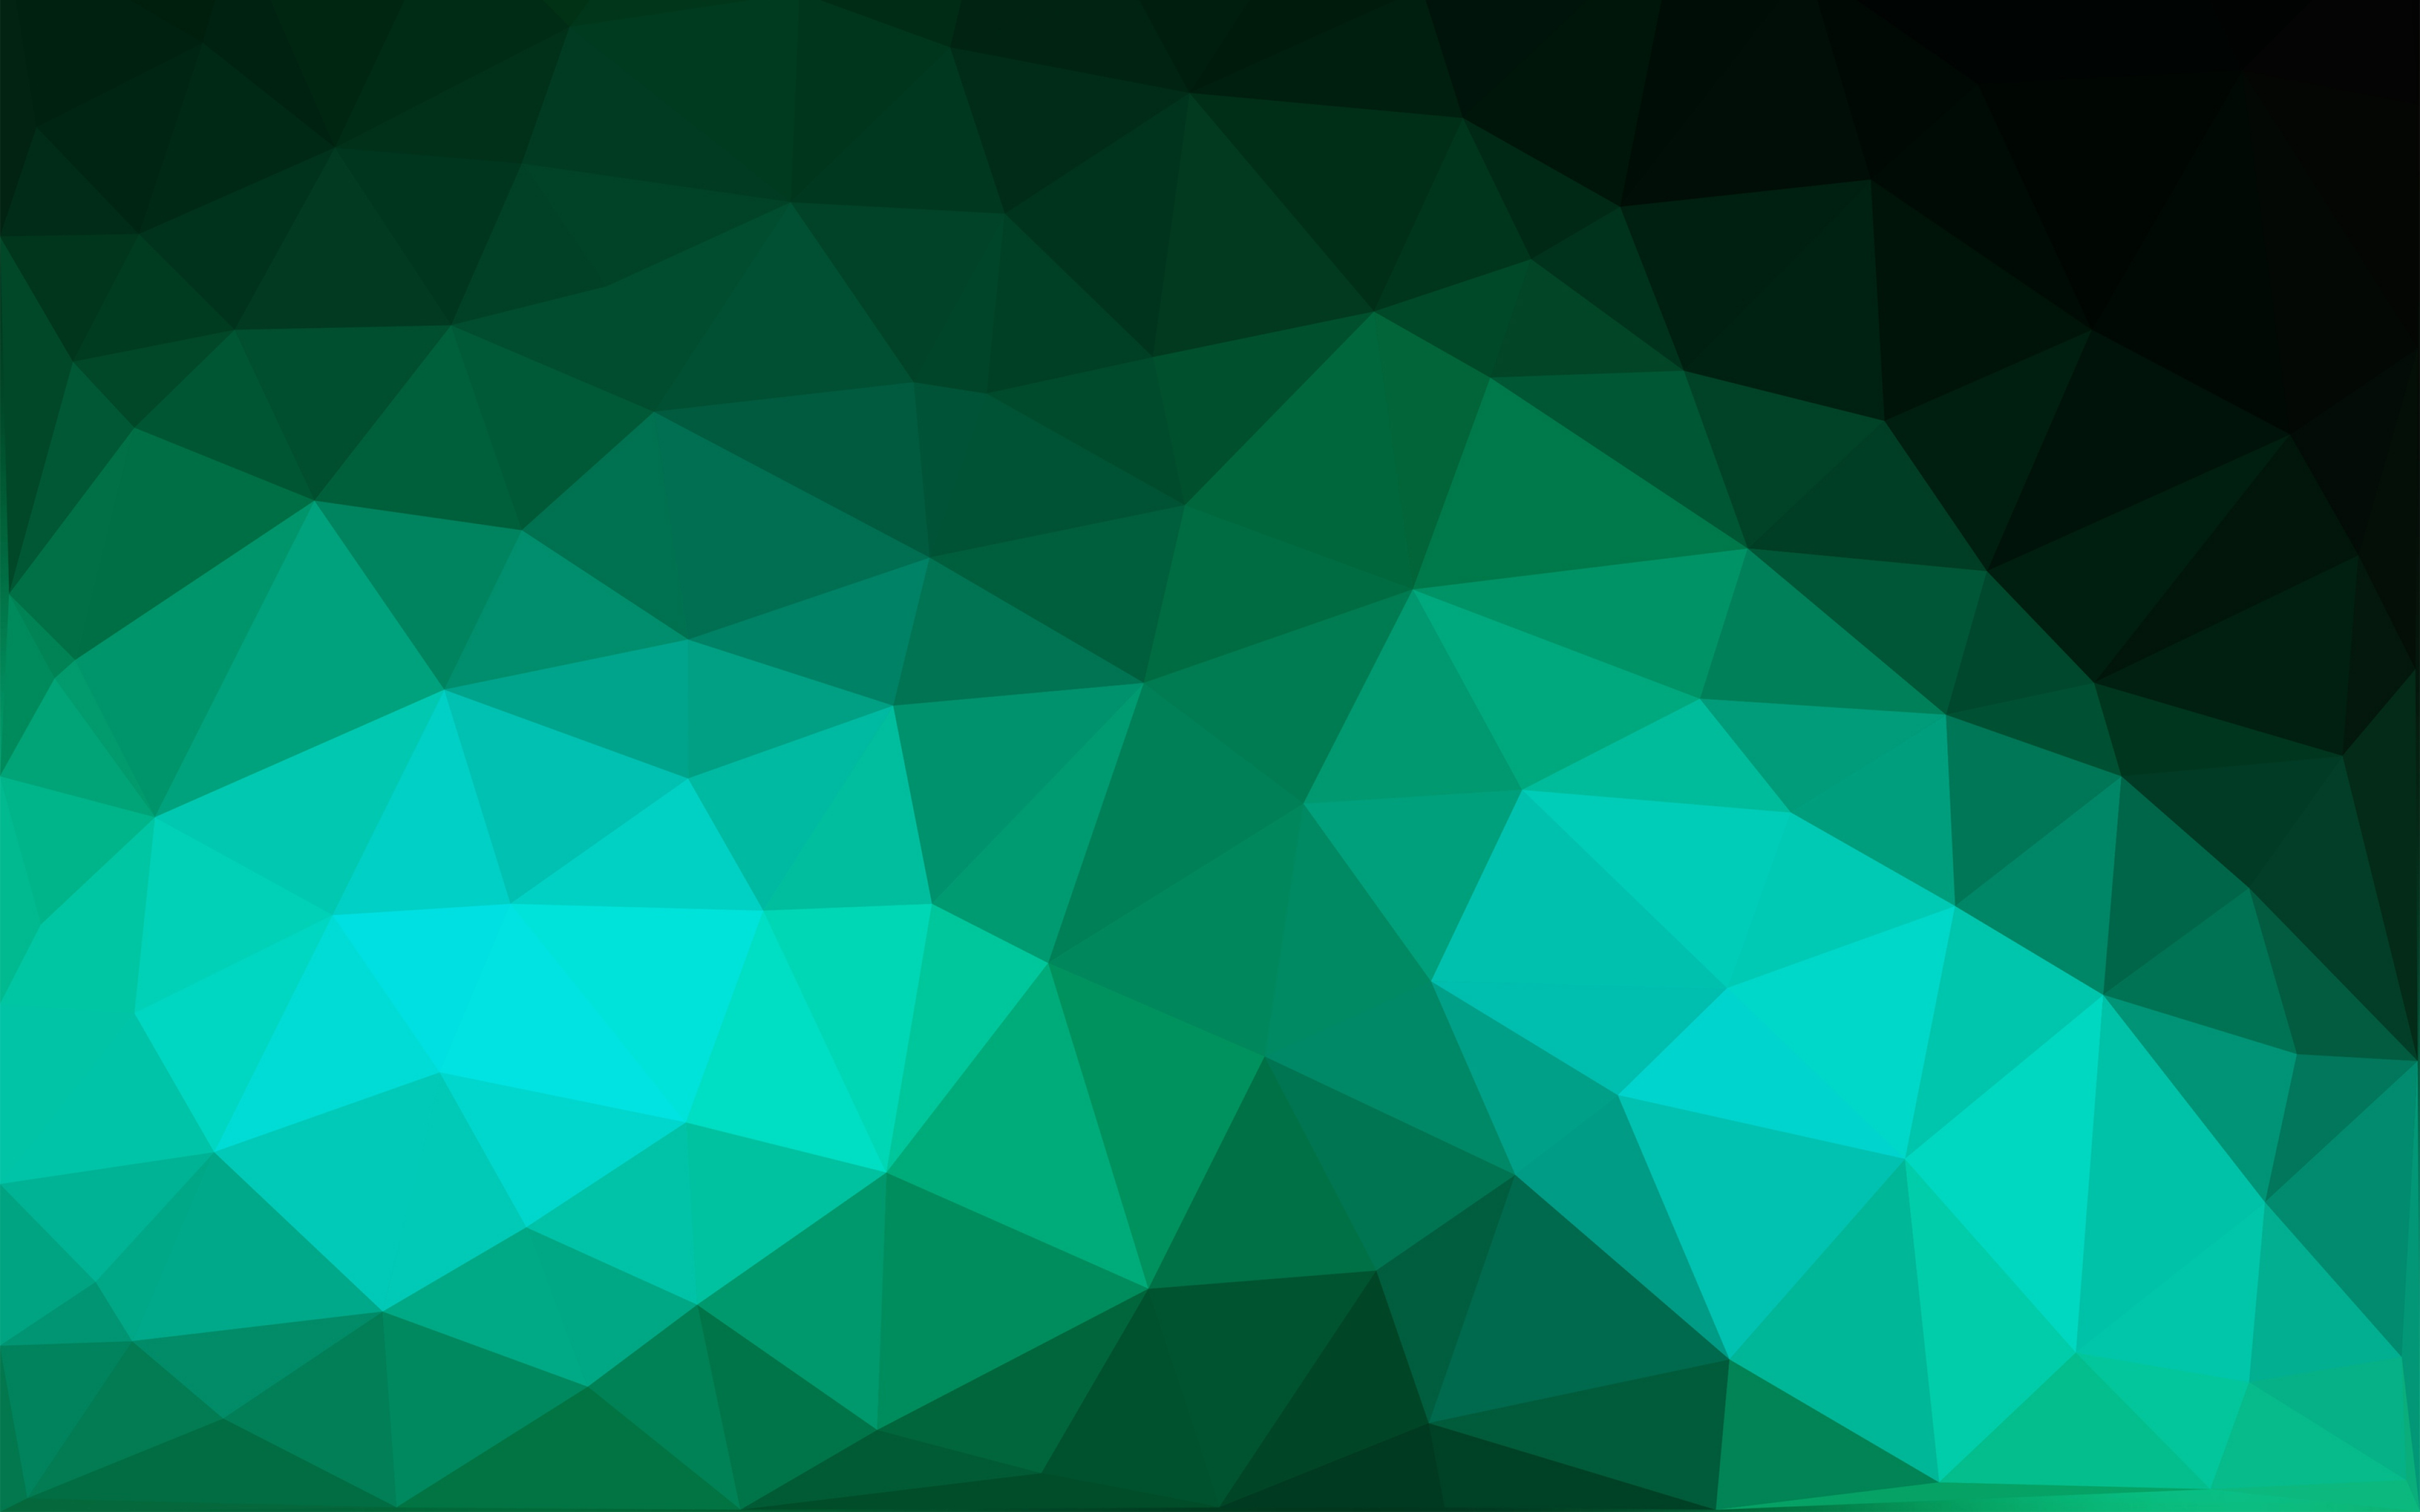 Hd Background Green Polygon Art Texture Design Pattern - Polygon Texture Blue Triangle Abstract Grunge Paper , HD Wallpaper & Backgrounds